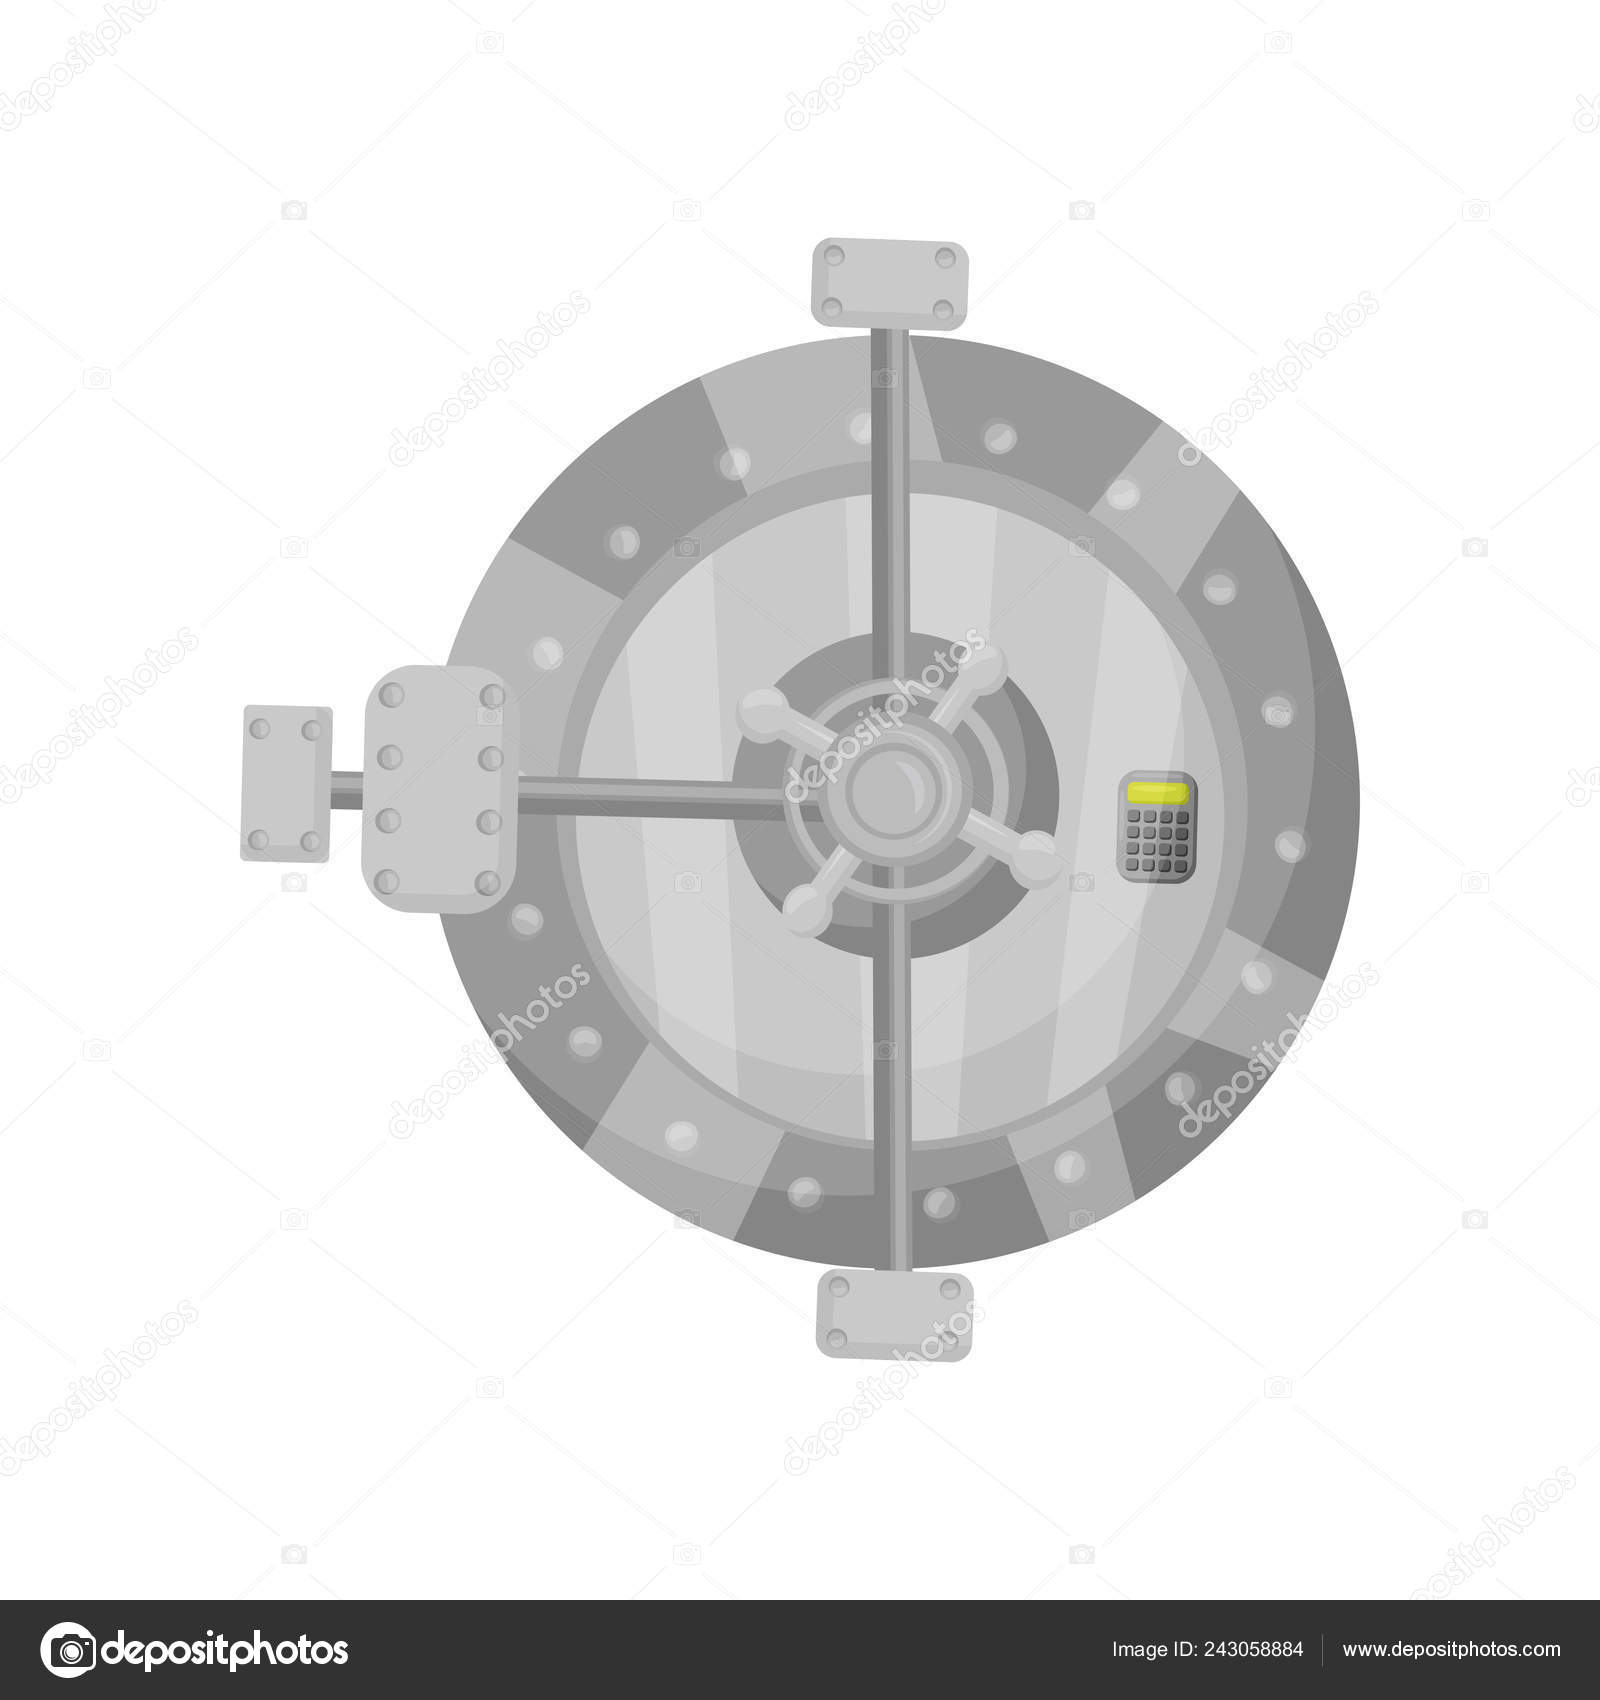 Metal Round Bank Vault Door With Button Keypad Strong Cabinet With Electronic Code Lock Flat Vector Design Stock Vector C Happypictures 243058884